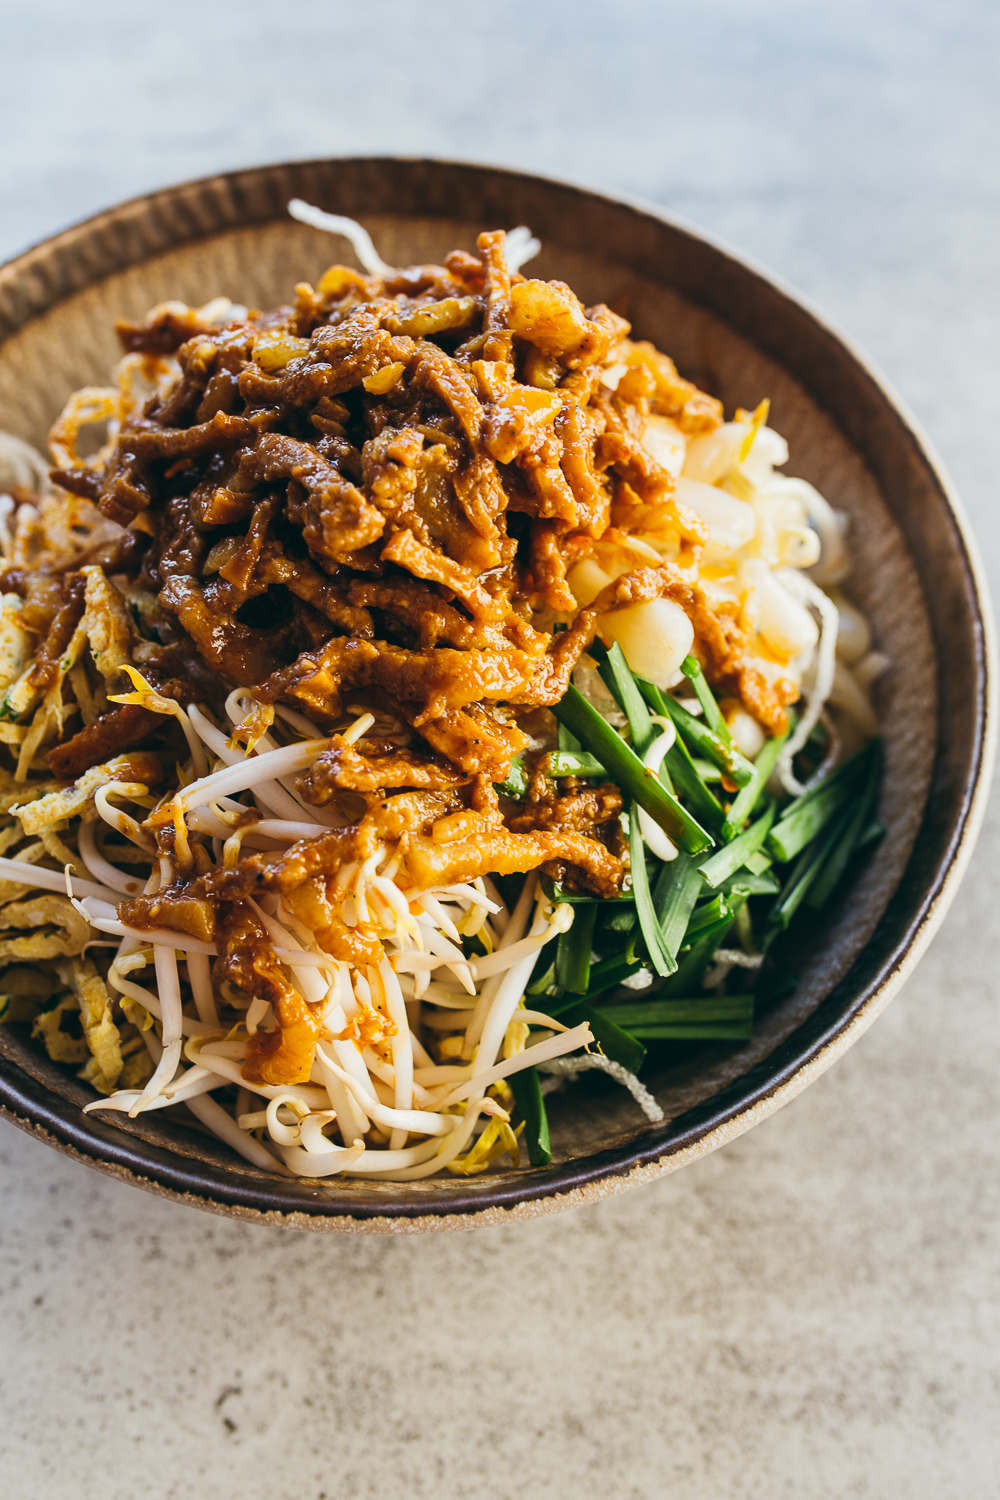 Cambodia - Royal Mak Mee : Crispy fried noodles topped with pan-fried sliced pork, marinated in Kroeung and fragrant lemongrass, and slowly cooked in coconut milk / Image: Malis restaurant